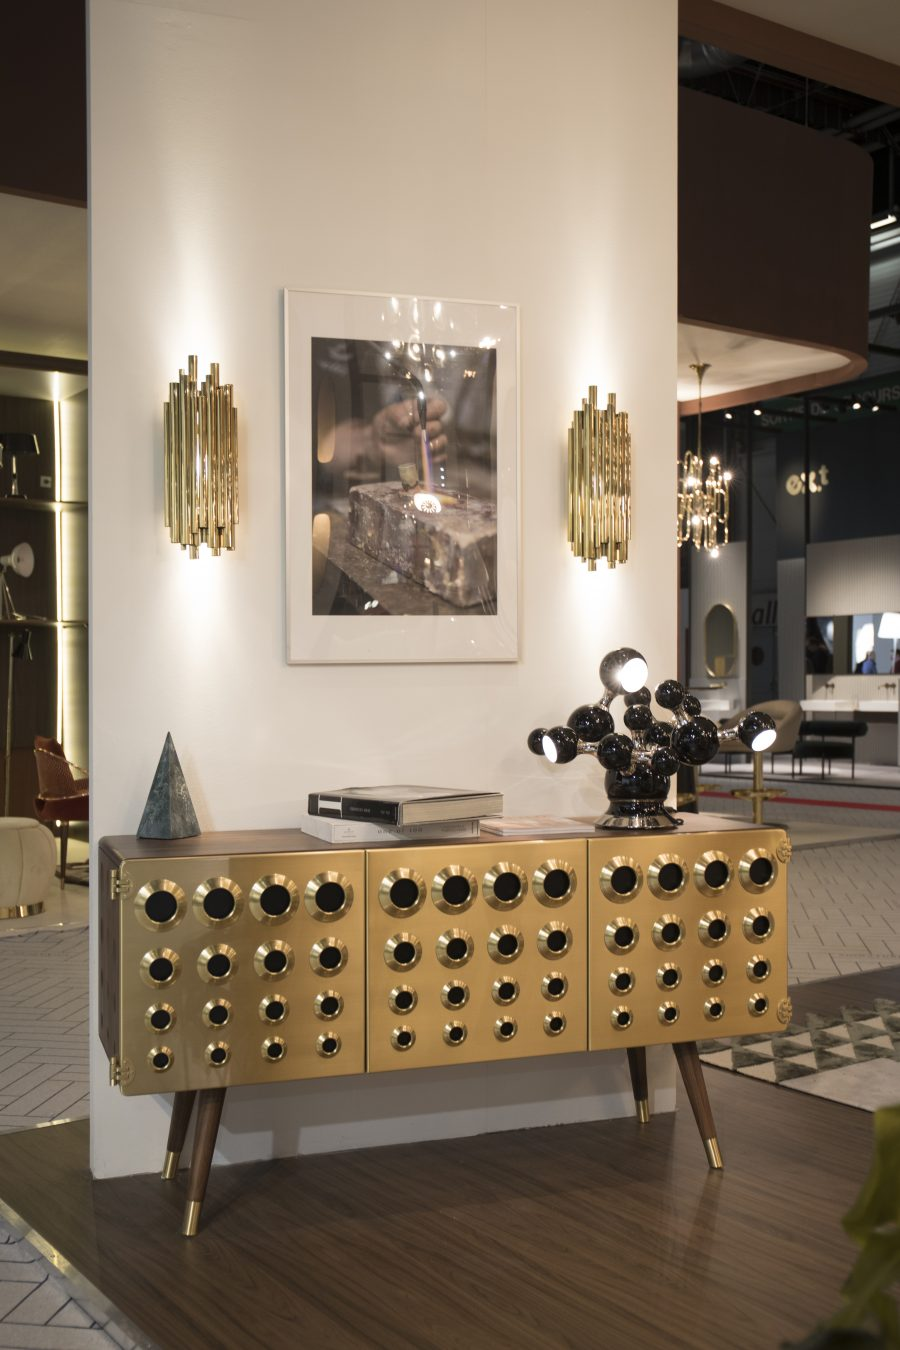 Amazing Mid-Century Furniture At Maison Et Objet  mid-century furniture Amazing Mid-Century Furniture At Maison Et Objet  Mid Century Furniture At Maison Et Objet 2019 3